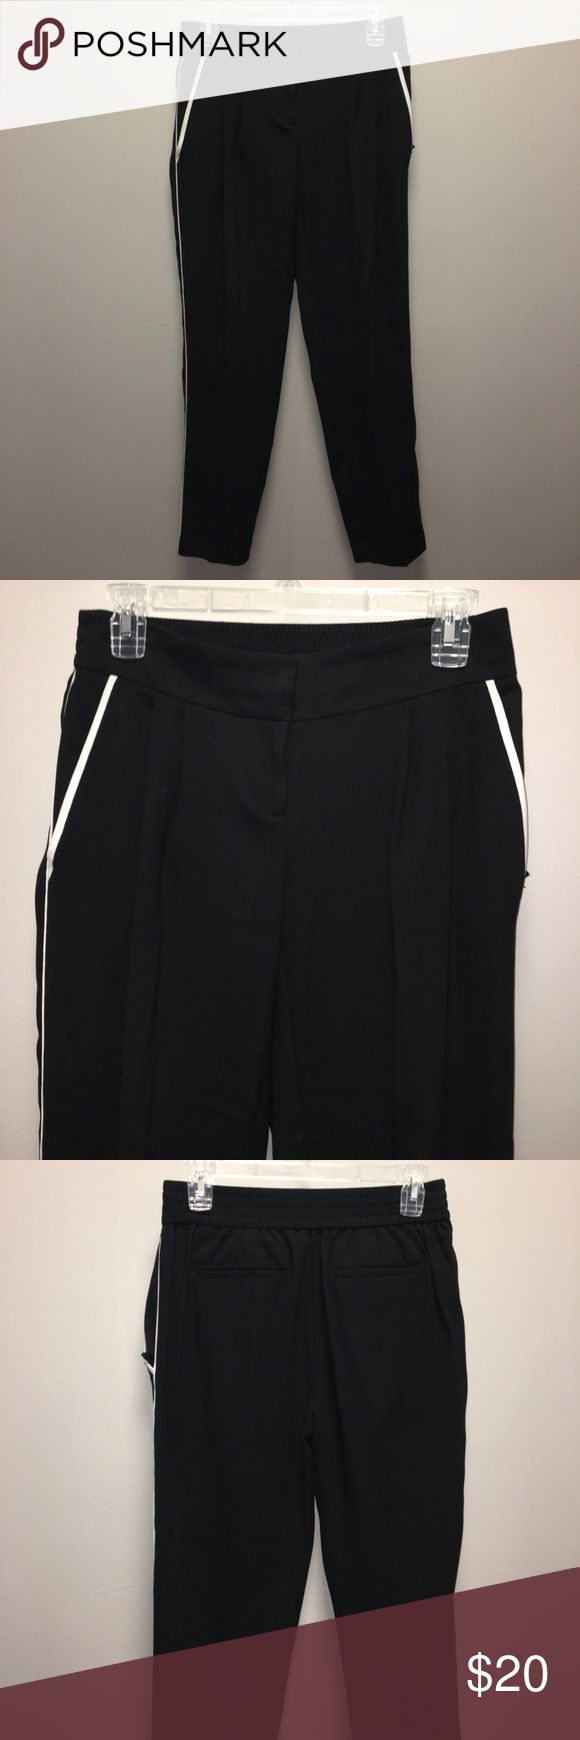 Loft Pants Solid Black. Size 0. Stretch waistband. White lining on pockets and front side. LOFT Pants